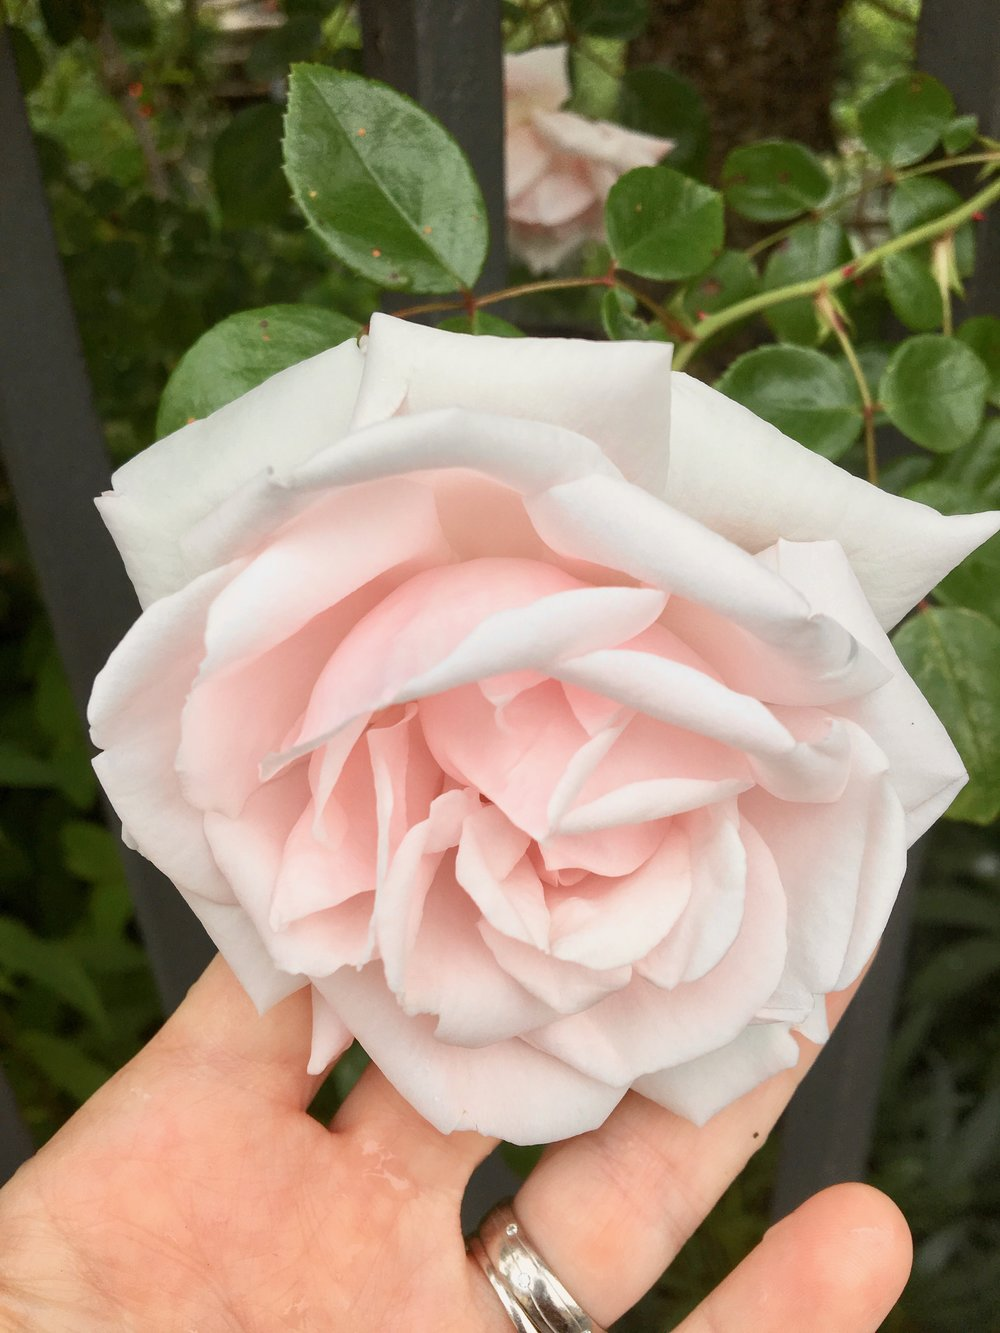 It takes 5000 tonnes of raw plant material to make 3 litres of precious pure Rose oil